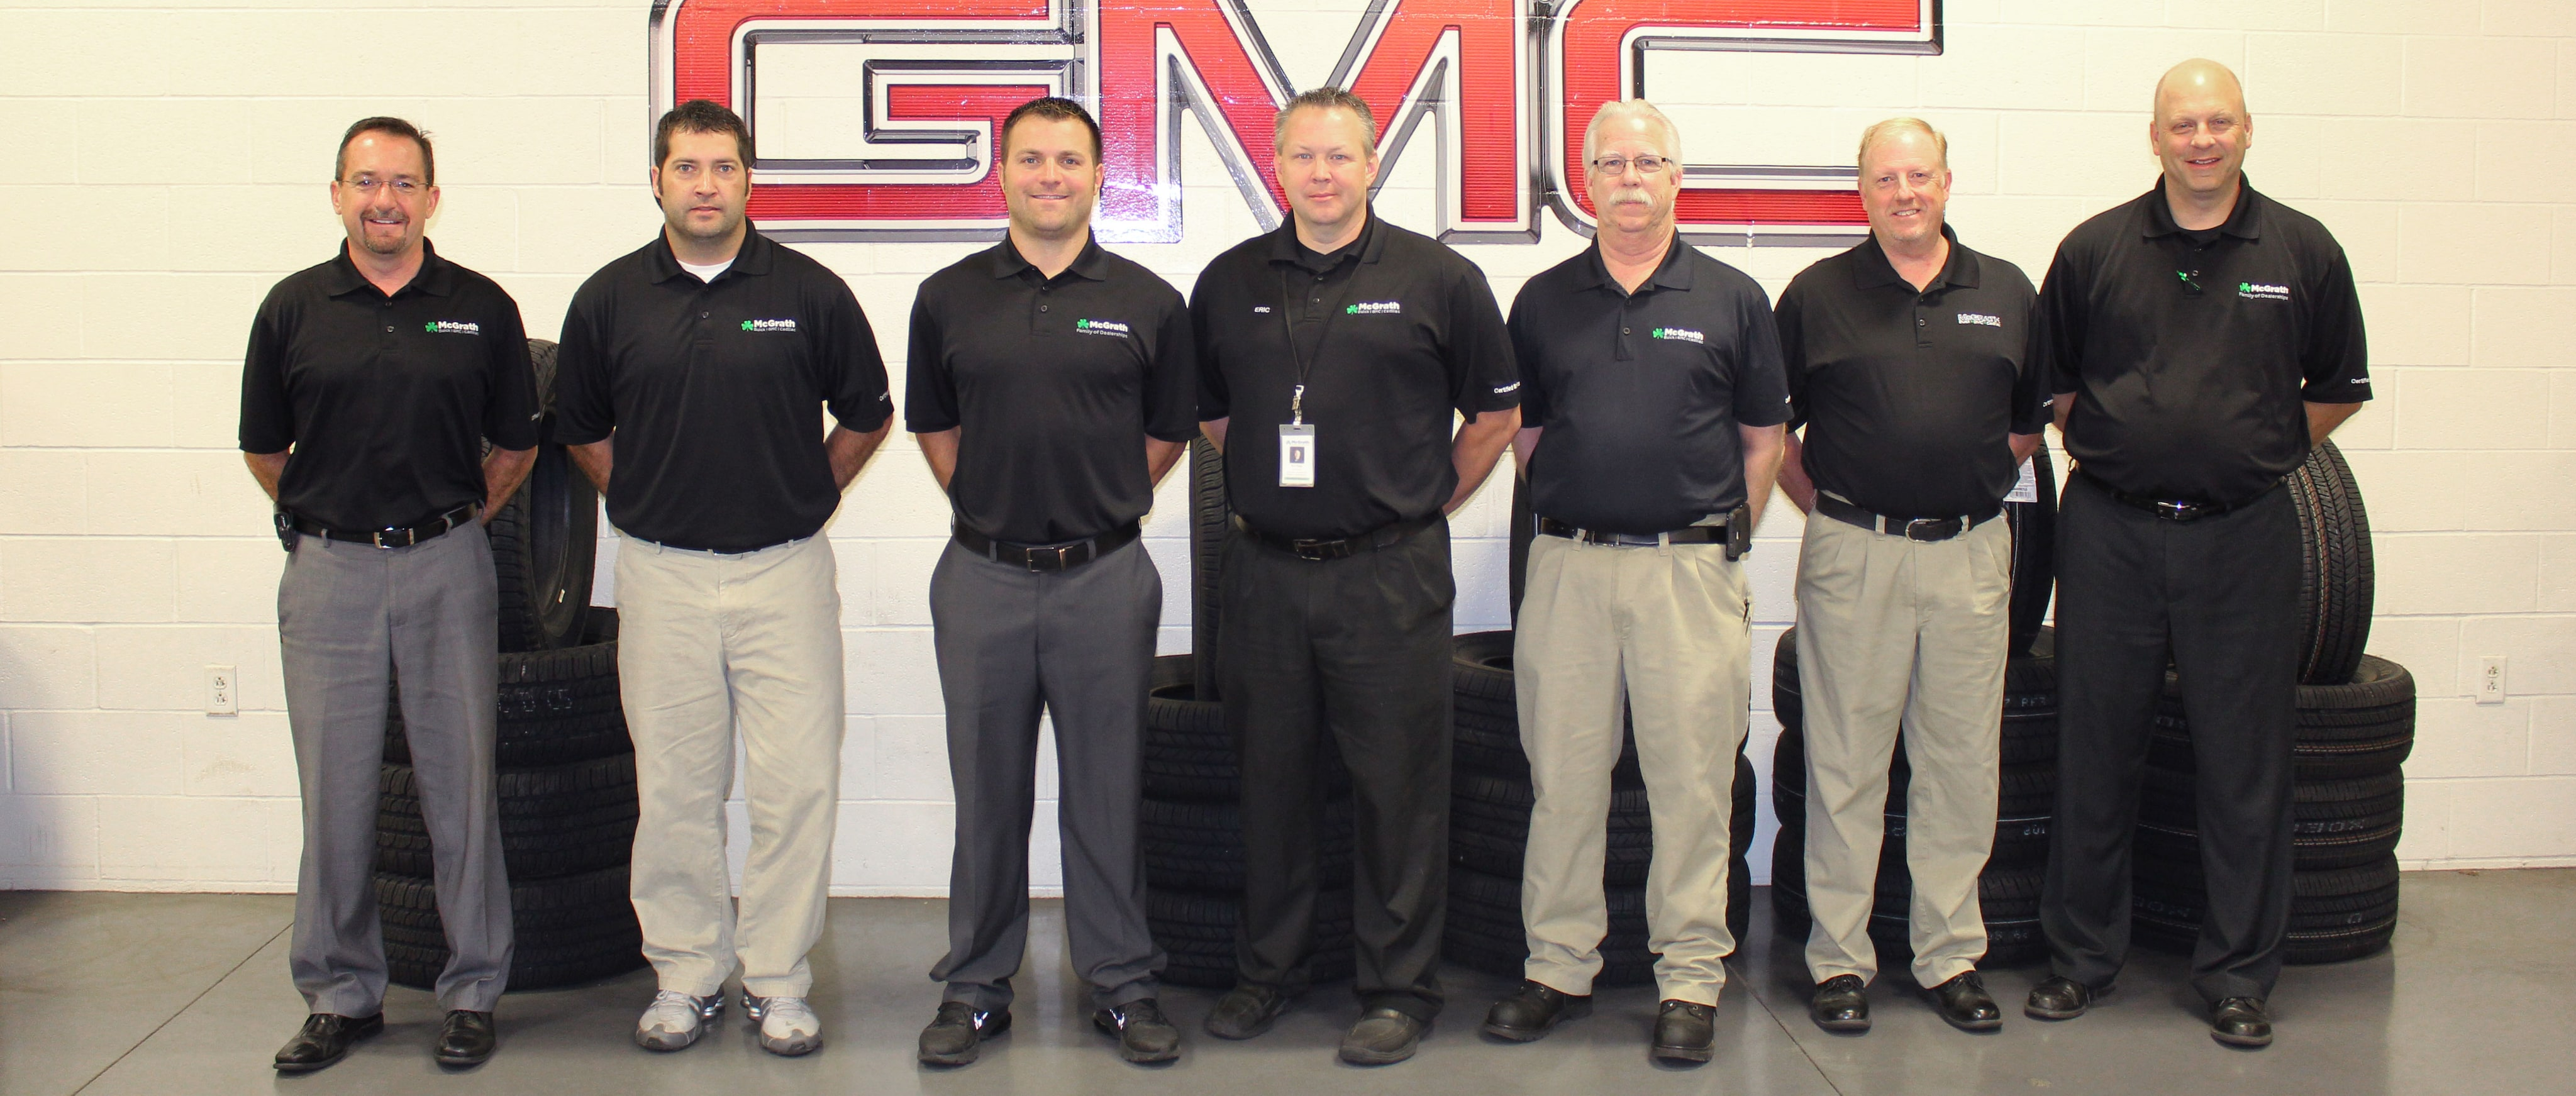 McGrath Employees